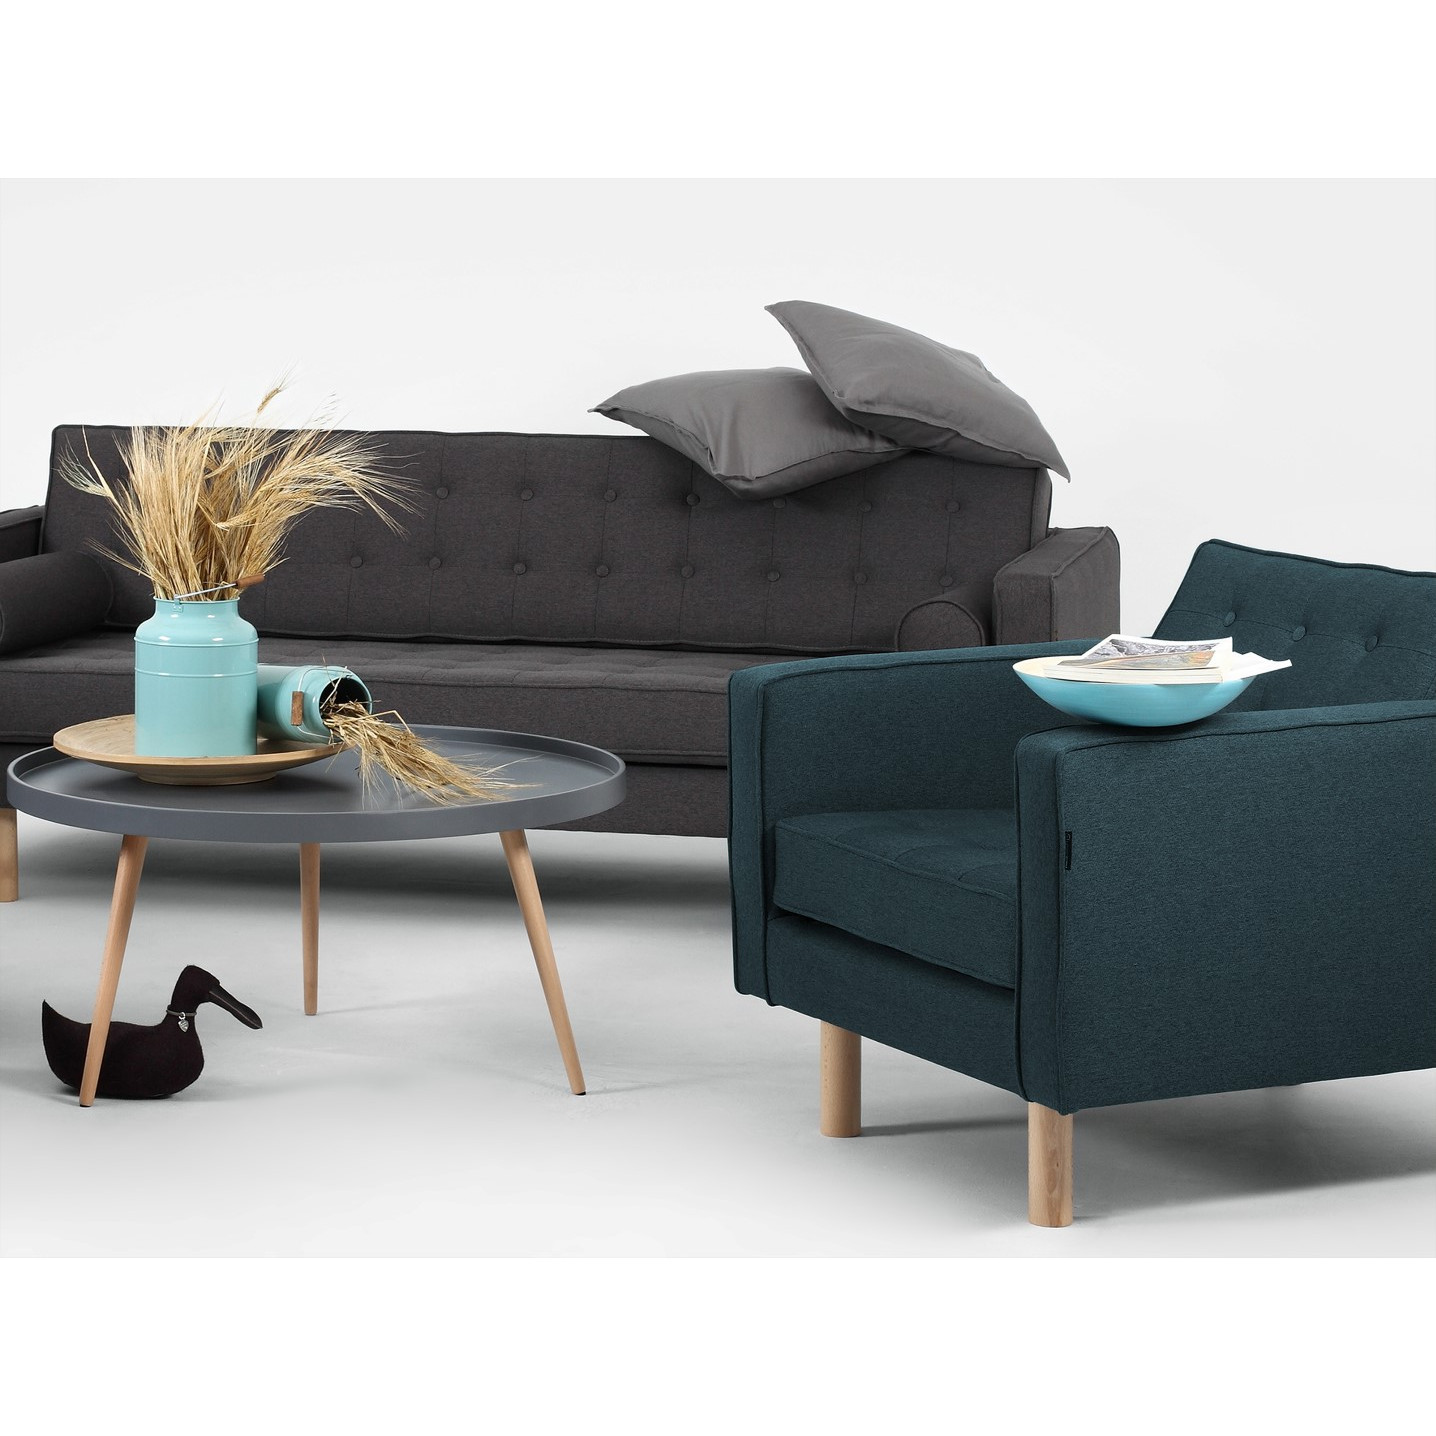 3 Seater Sofa Bed Topic Wood   Steel